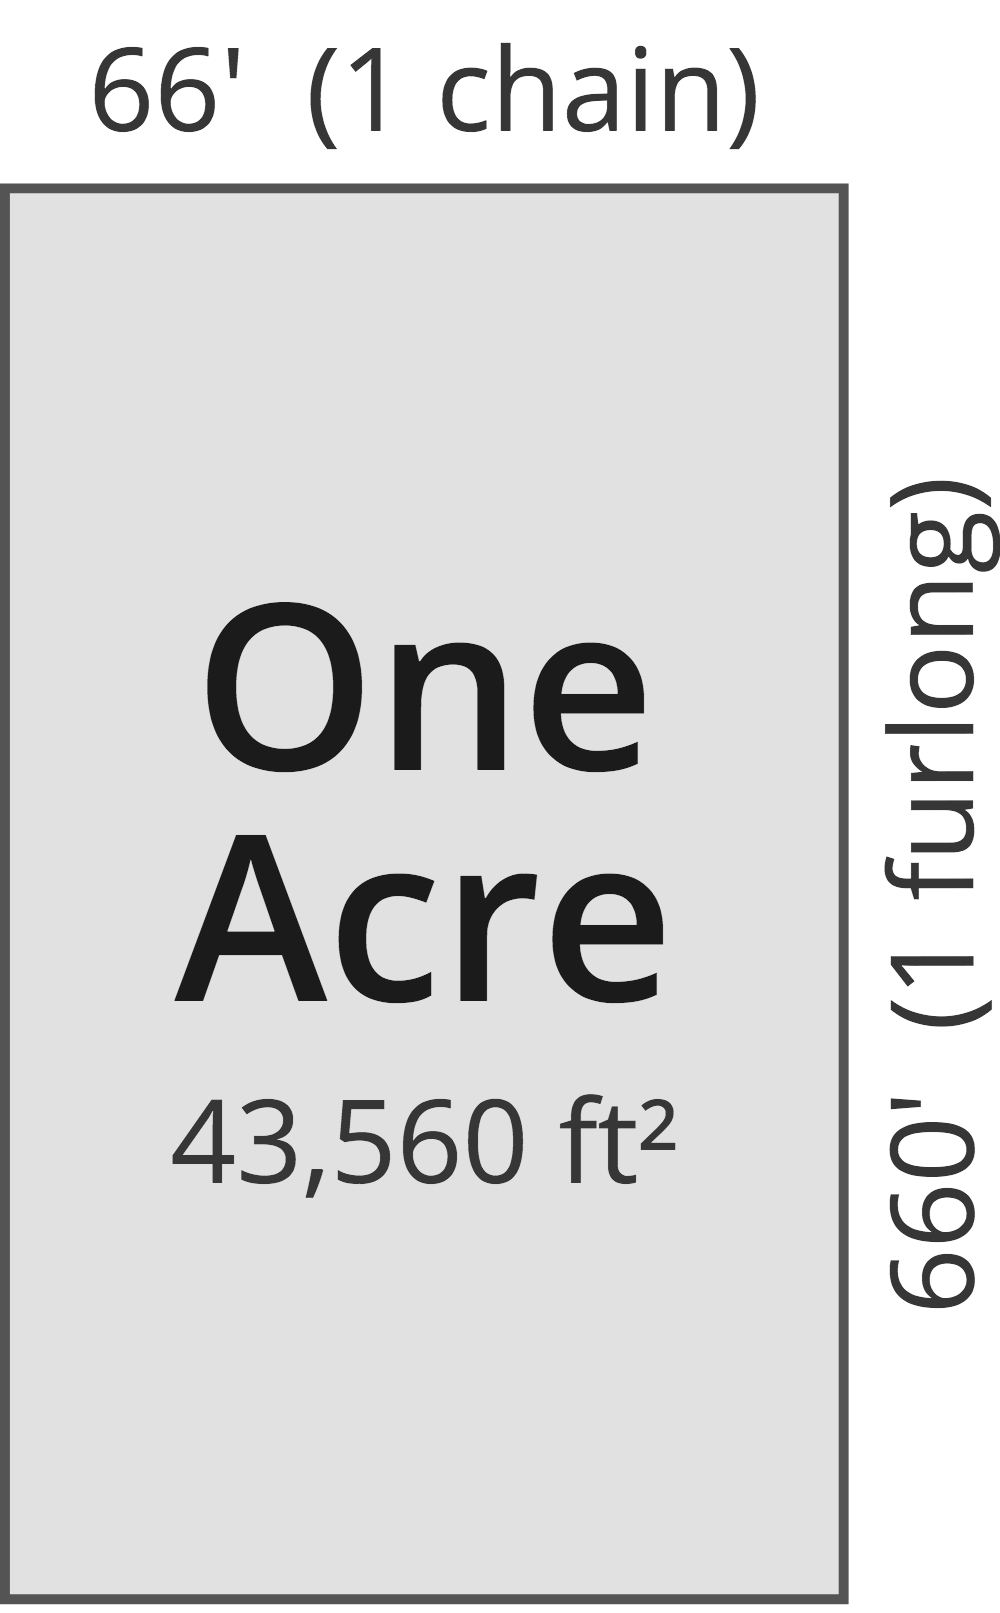 Illustration showing the size of an acre is a parcel of land that is 66 feet